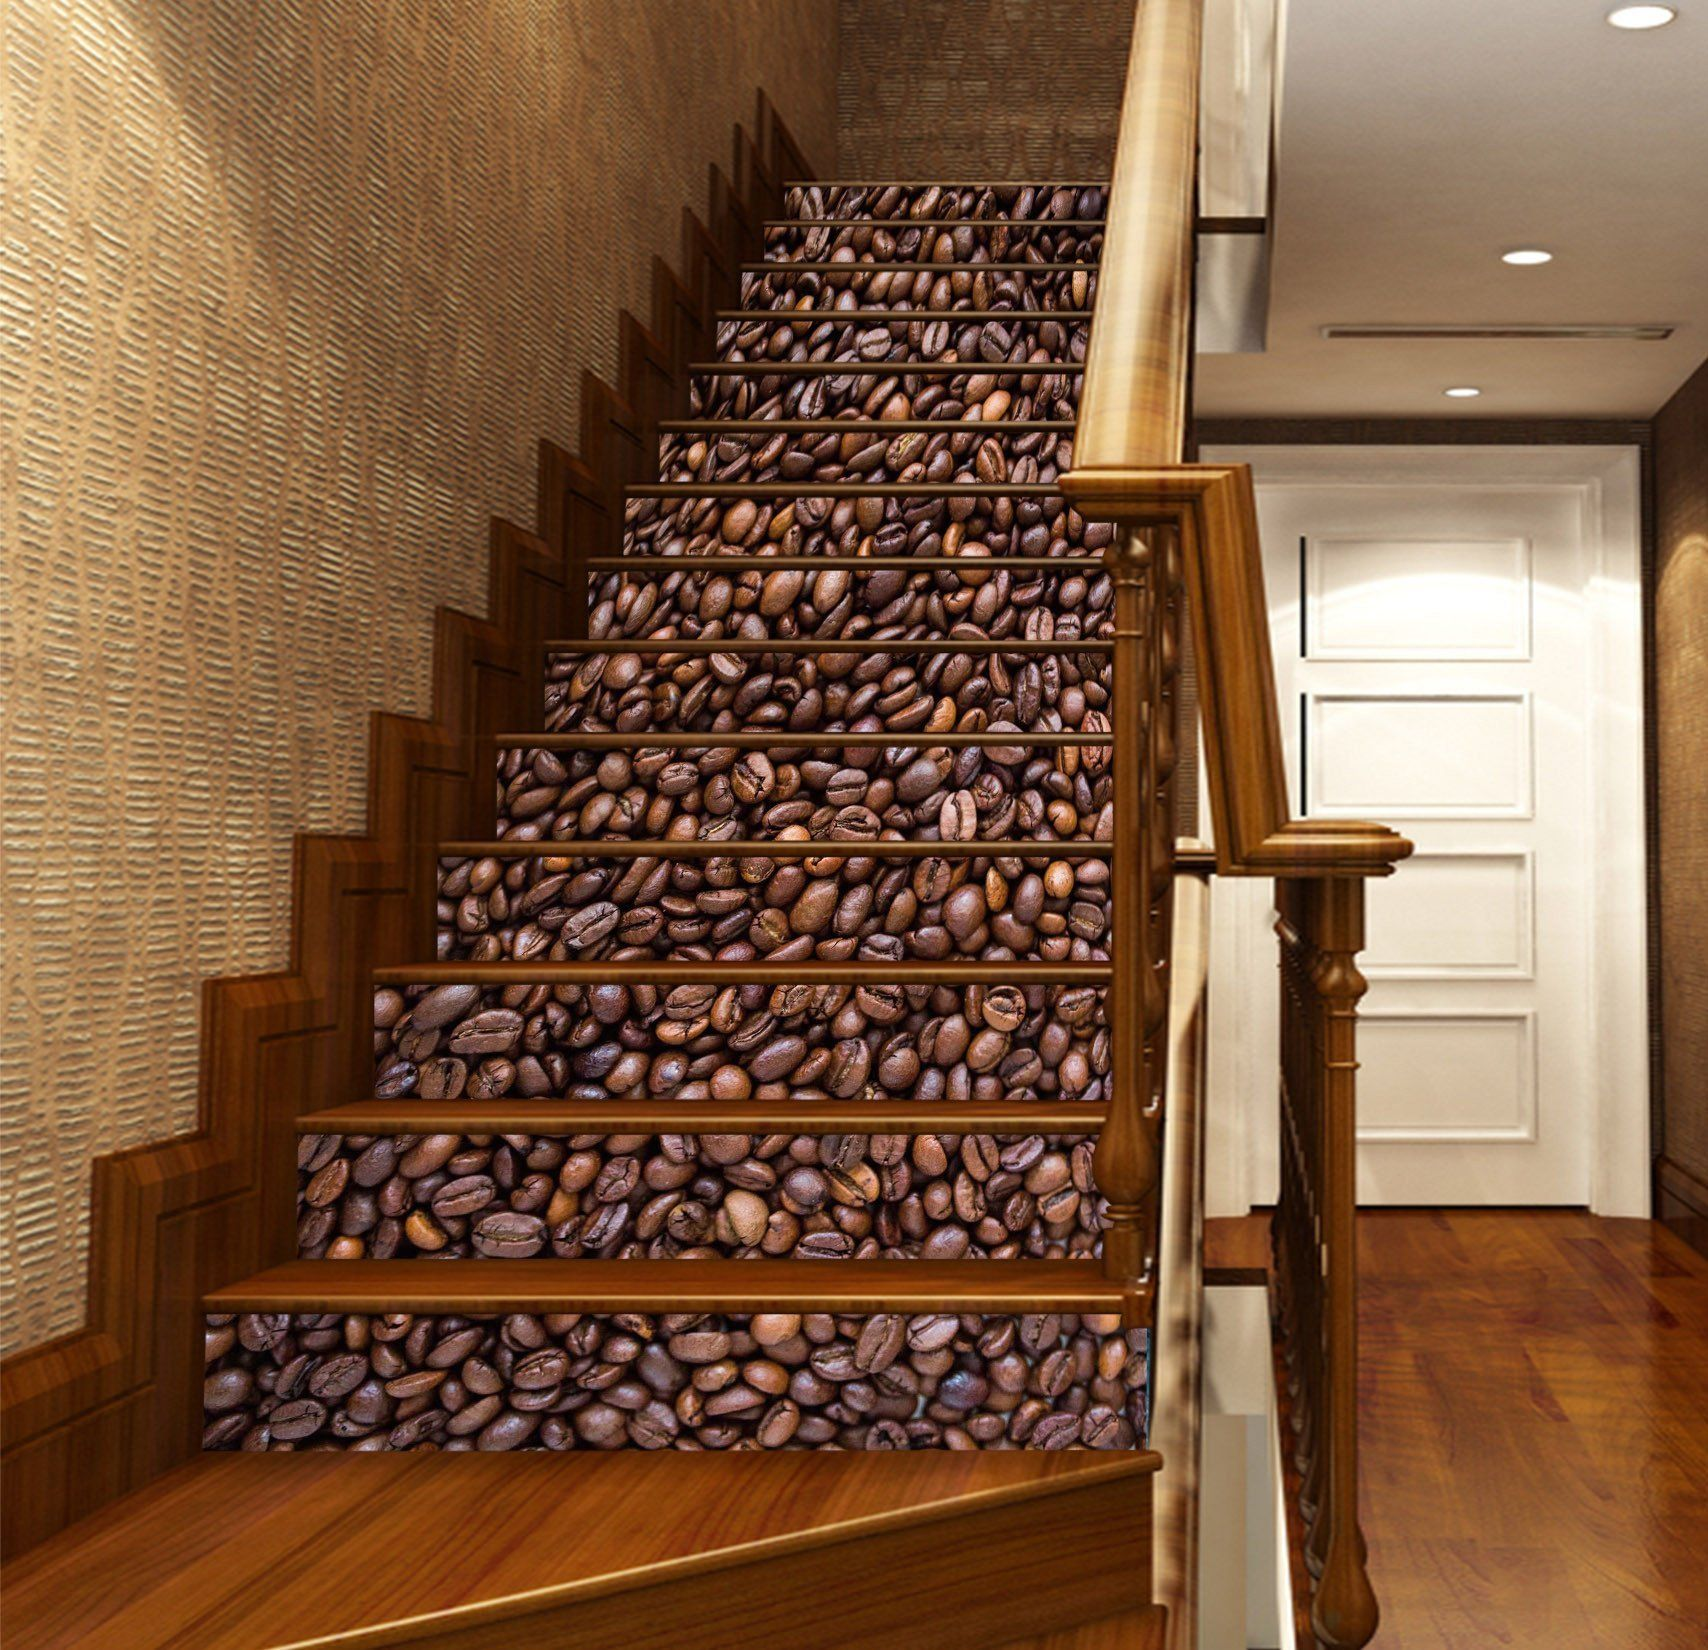 20 Excellent Traditional Staircases Design Ideas: 3D Coffee Beans Heap 1138 Stair Risers